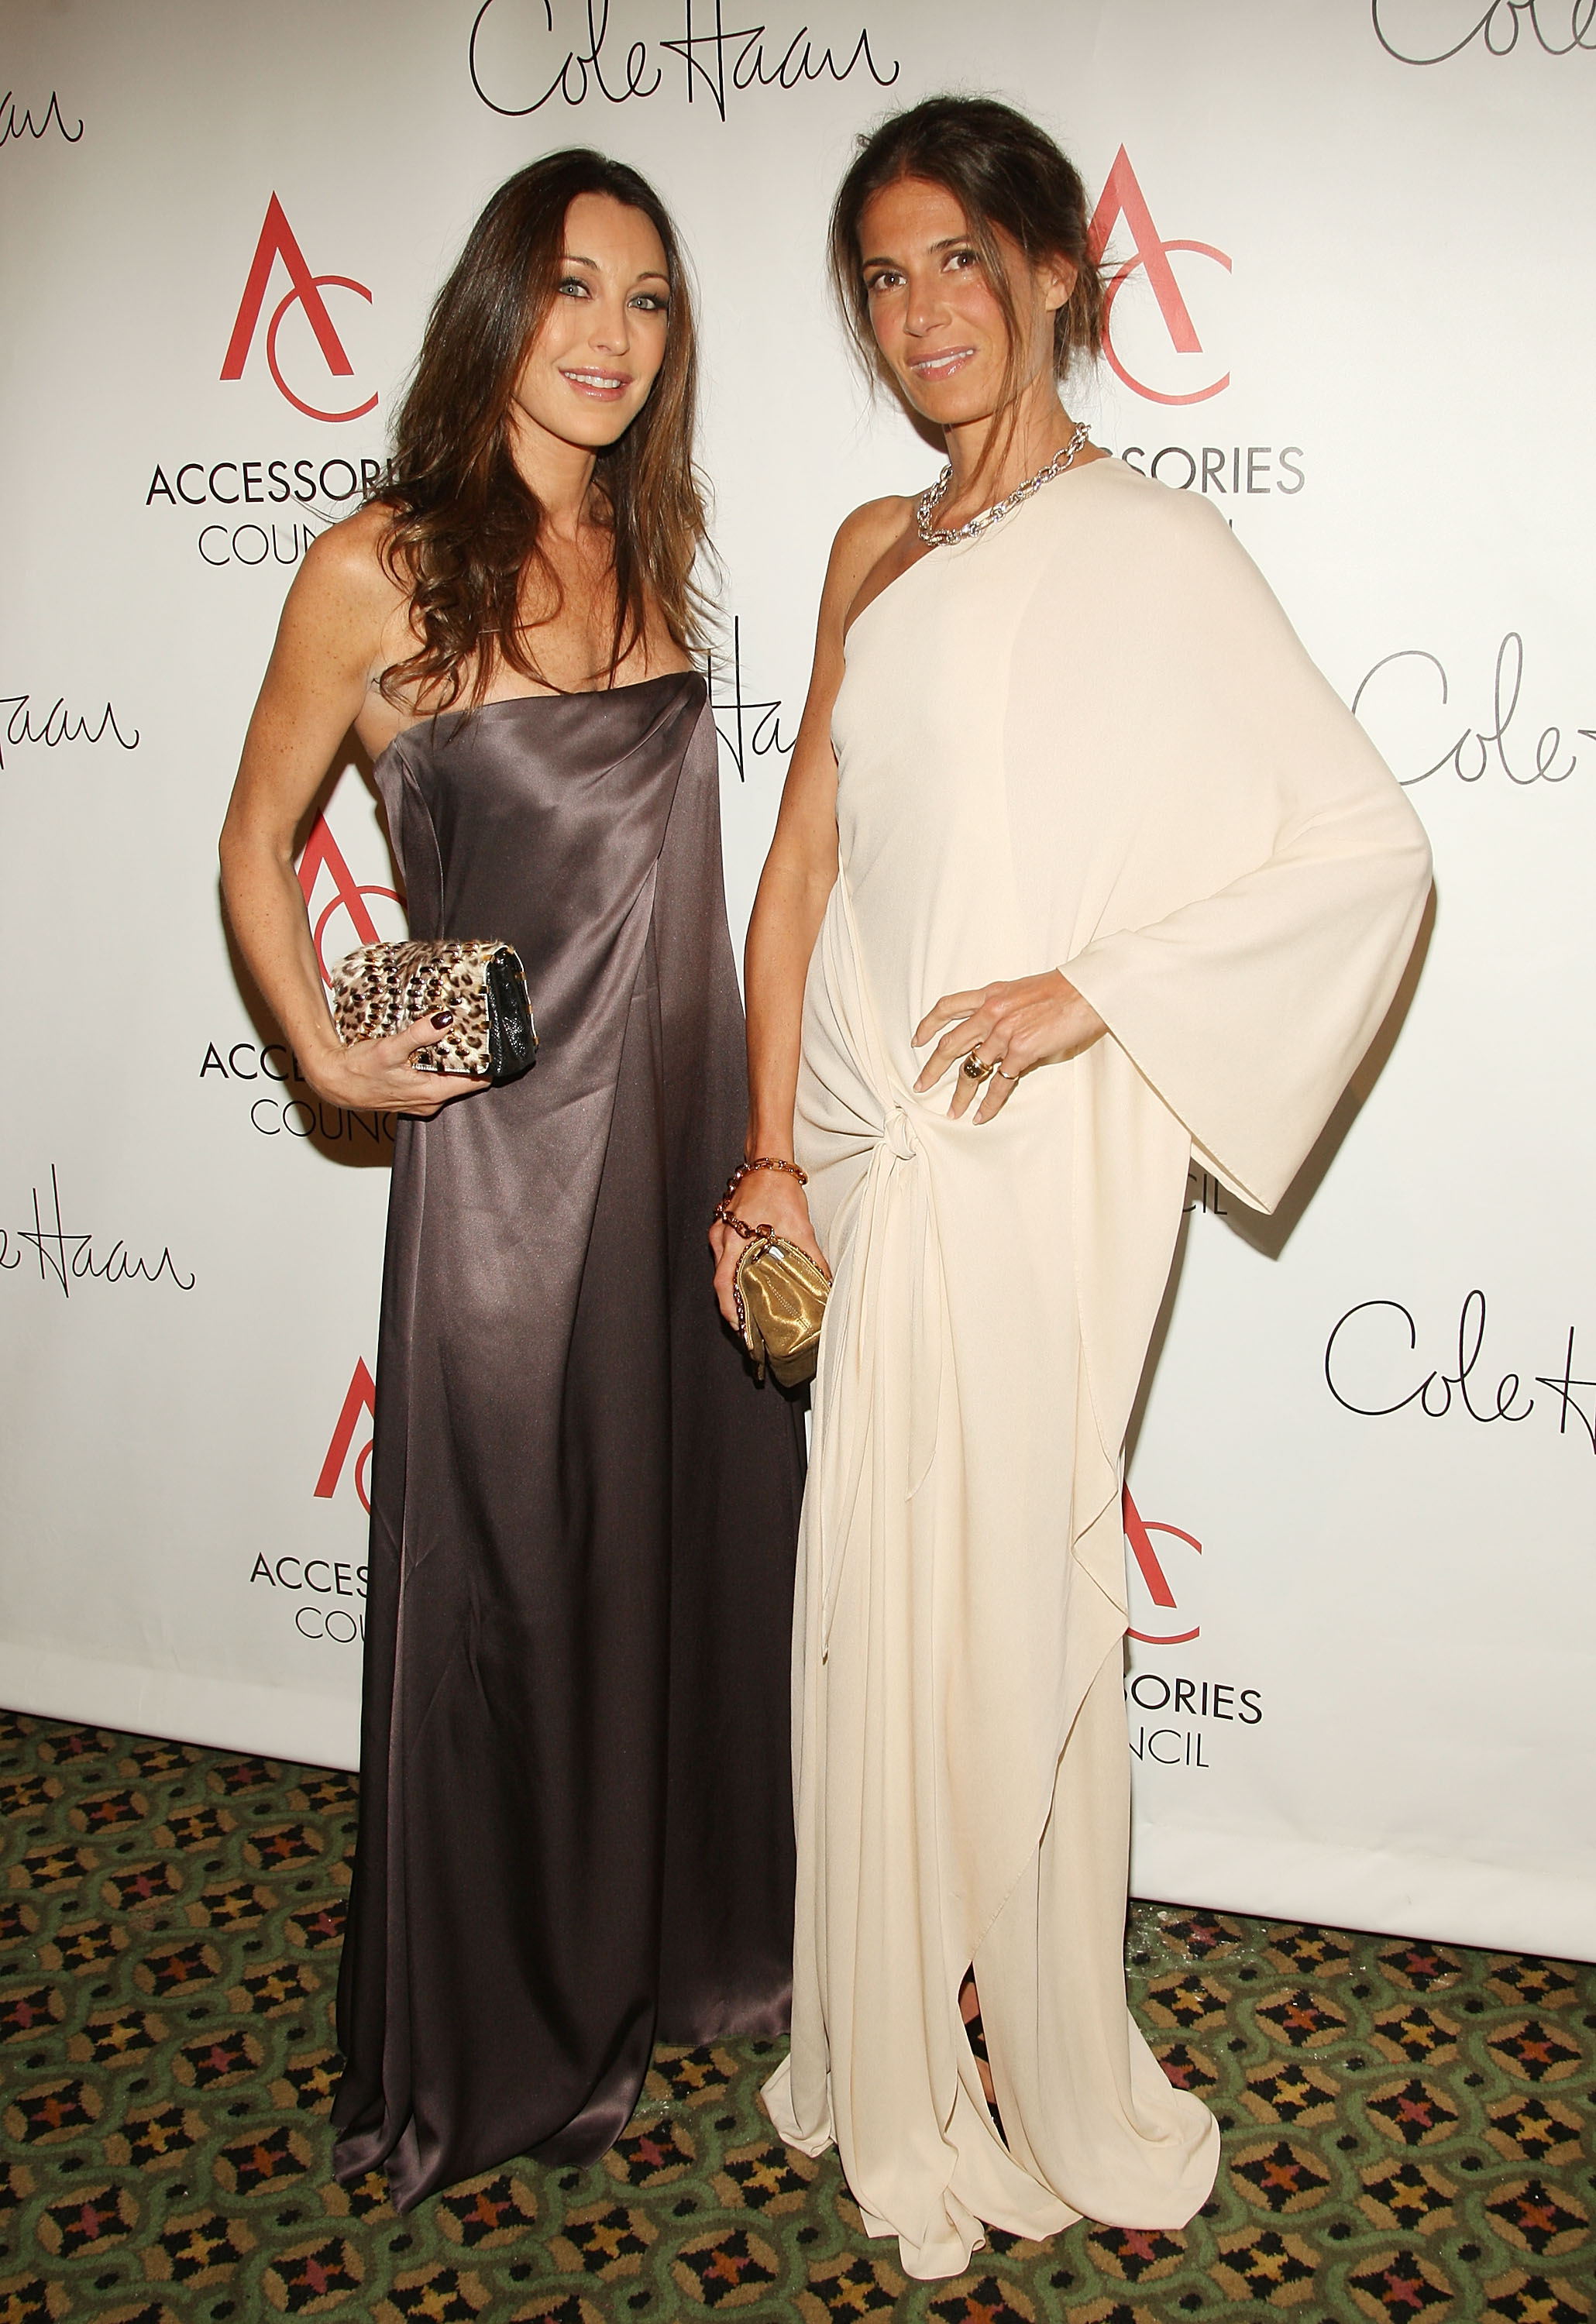 Tamara Mellon and Vanity Fair's Elizabeth Saltzman Walker, both in Halston.